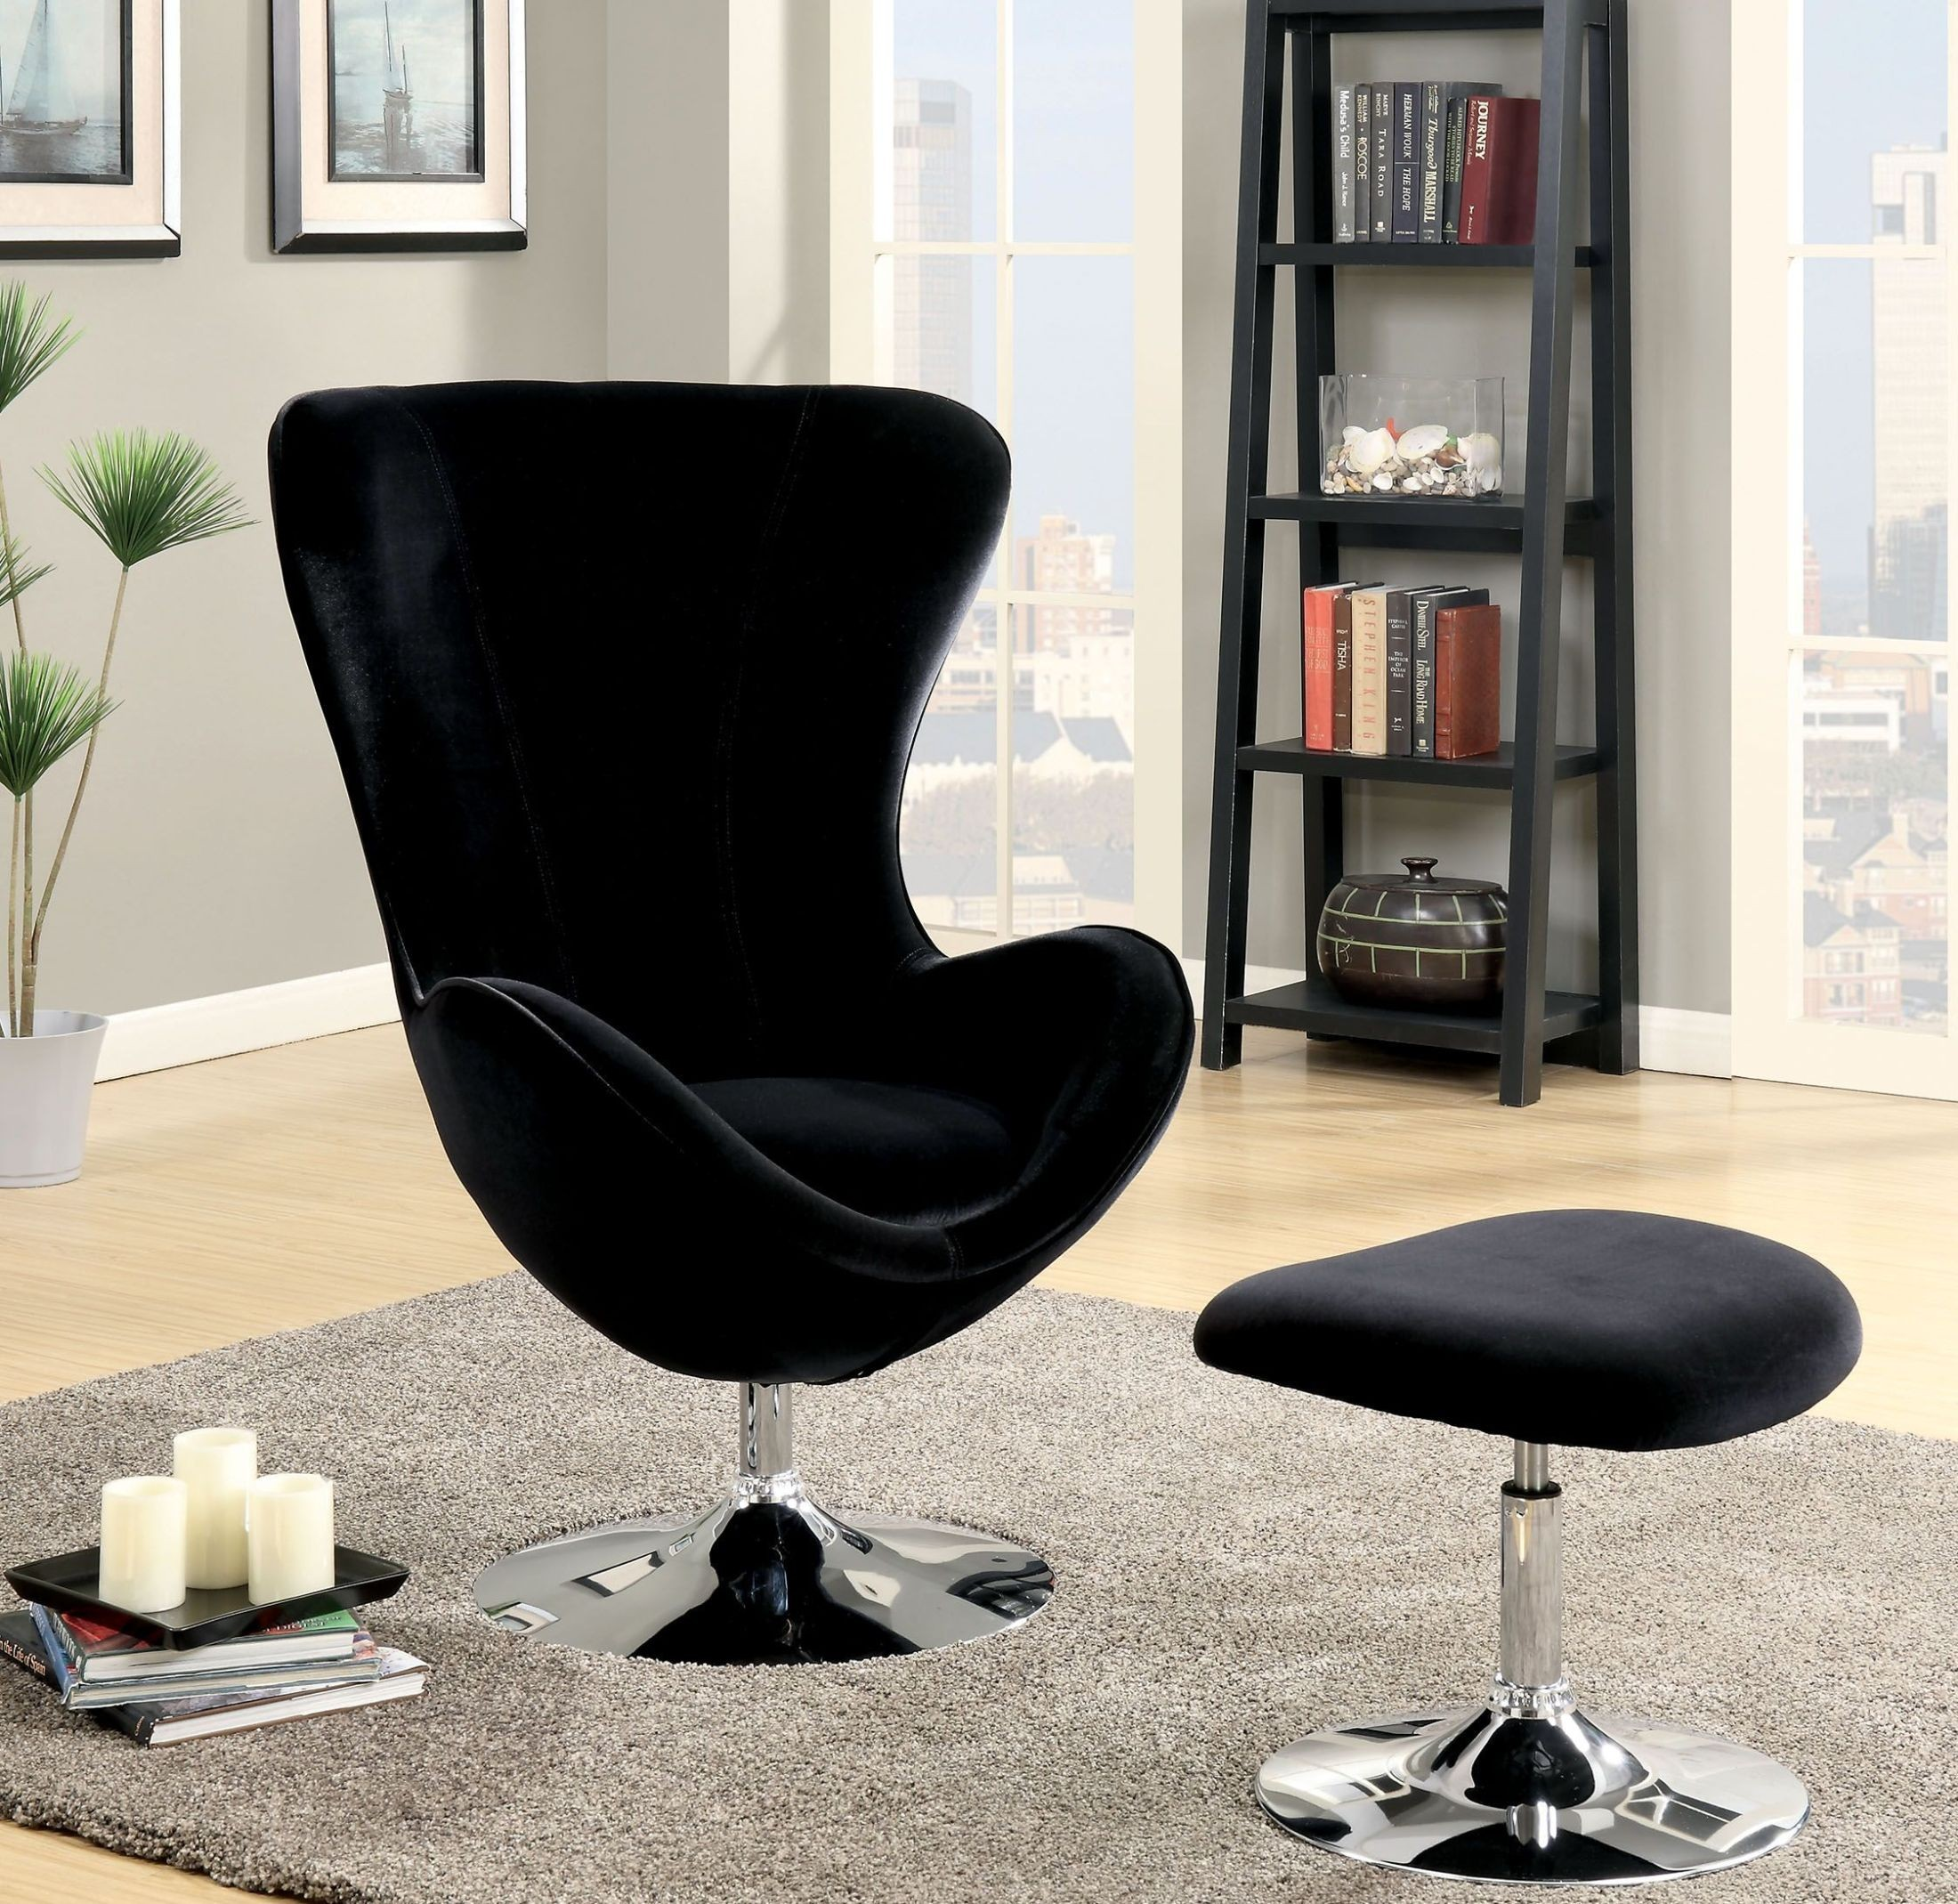 Shelia Black Accent Chair With Ottoman from Furniture of America